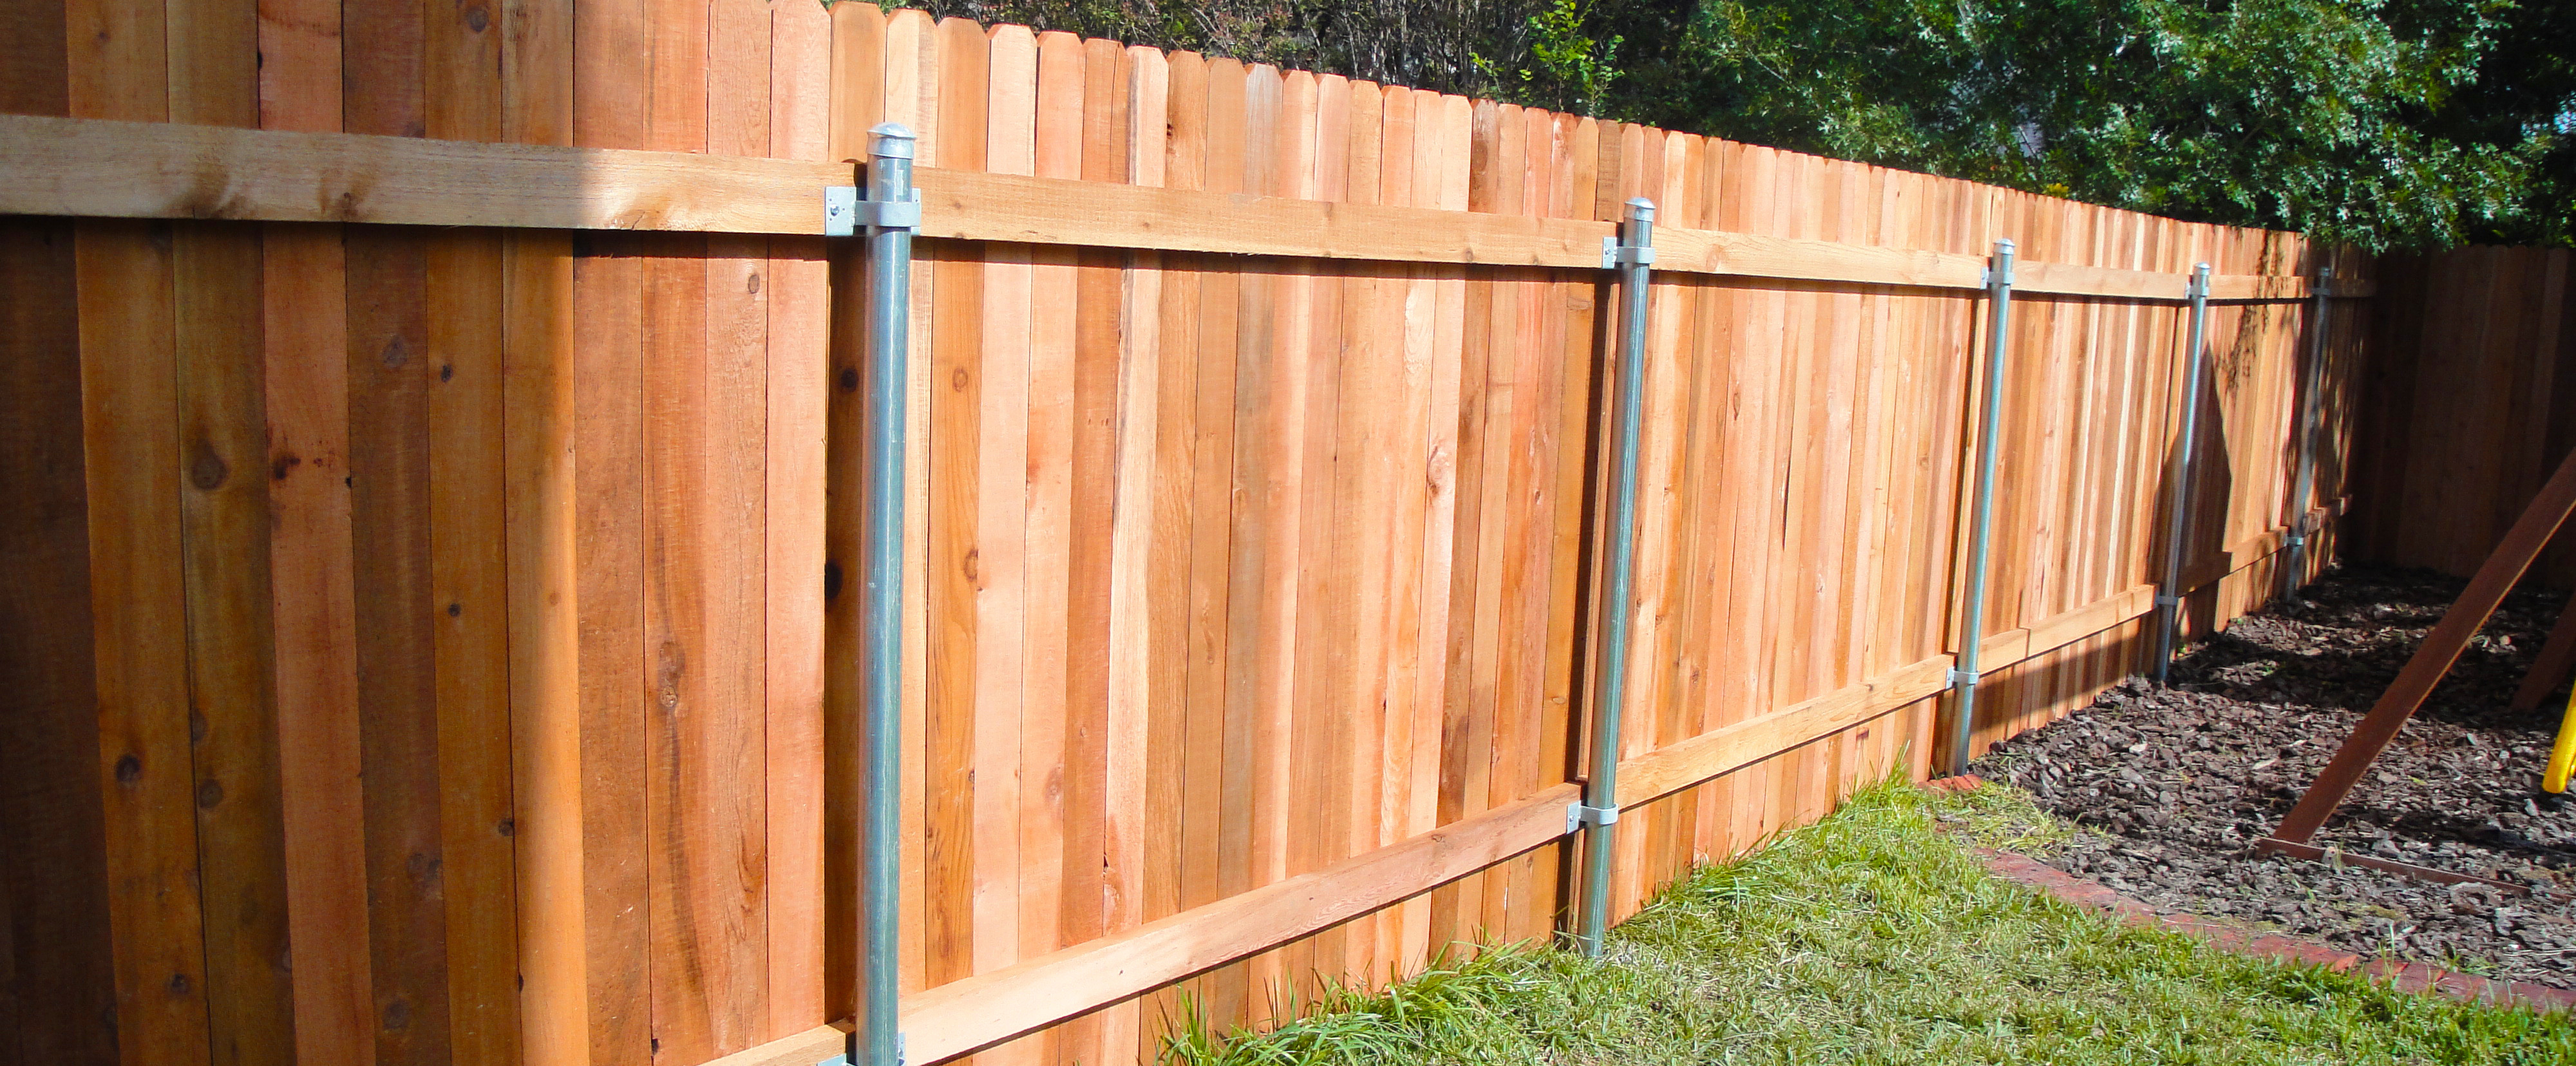 Metal Privacy Fence Cost Inspirational Fence Cost Chain Link Fence in 16 Smart Ideas How to Make Backyard Fence Cost Calculator